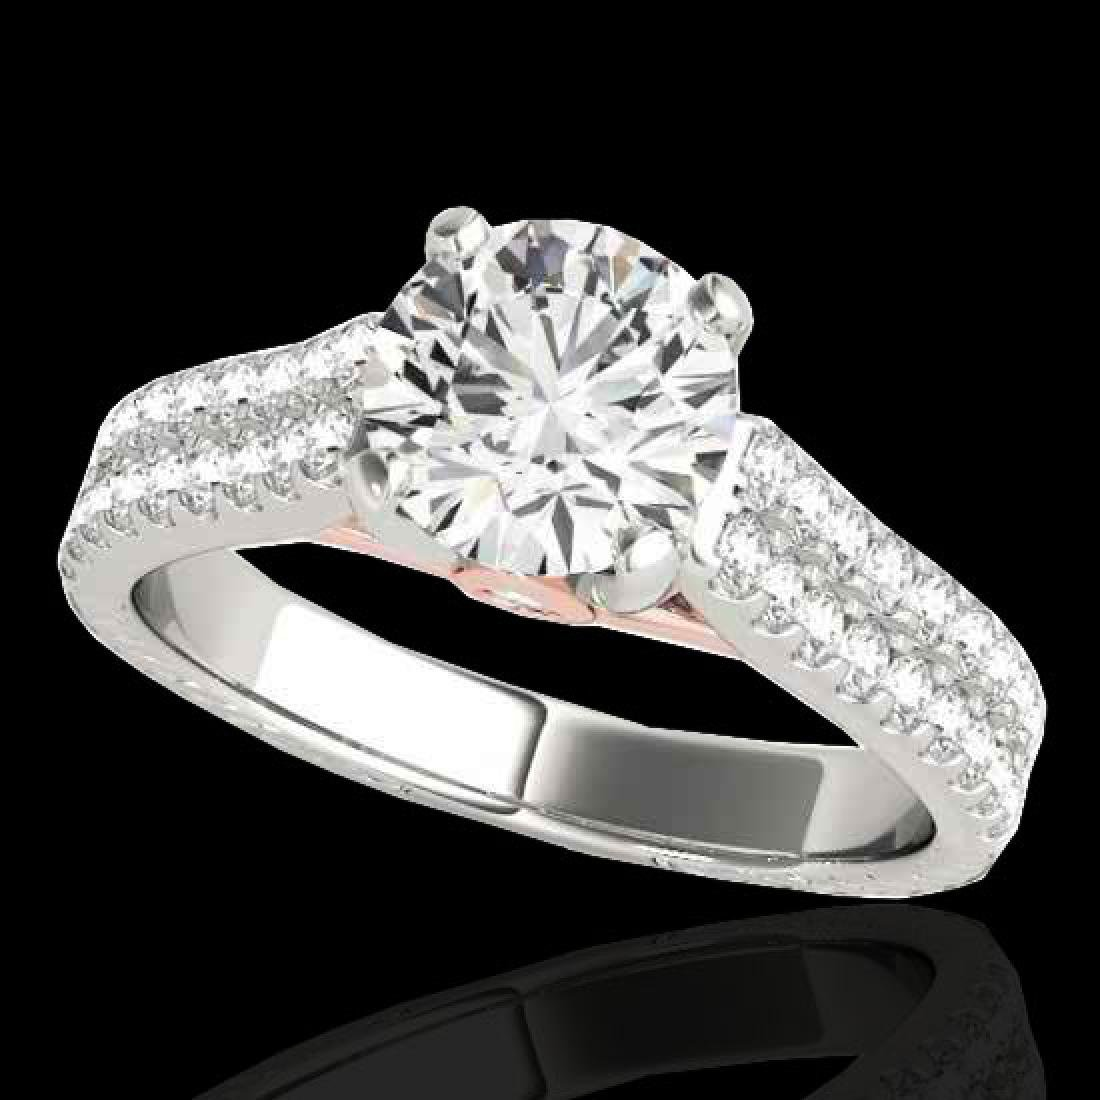 1.61 CTW H-SI/I Certified Diamond Pave Ring 10K White &